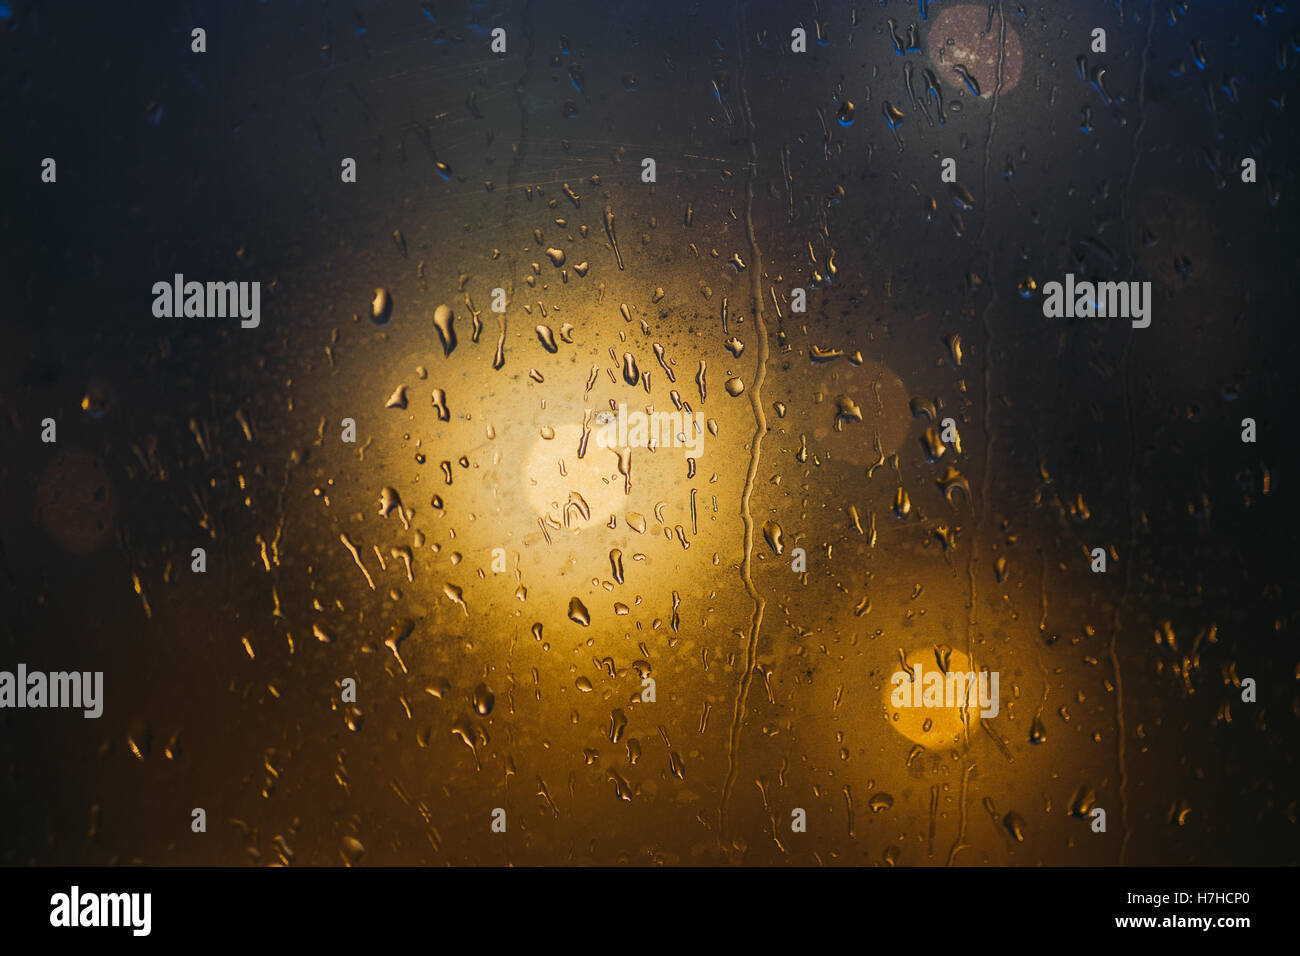 Blurred lights through steamy window with raindrops, dark background, selective focus - Stock Image